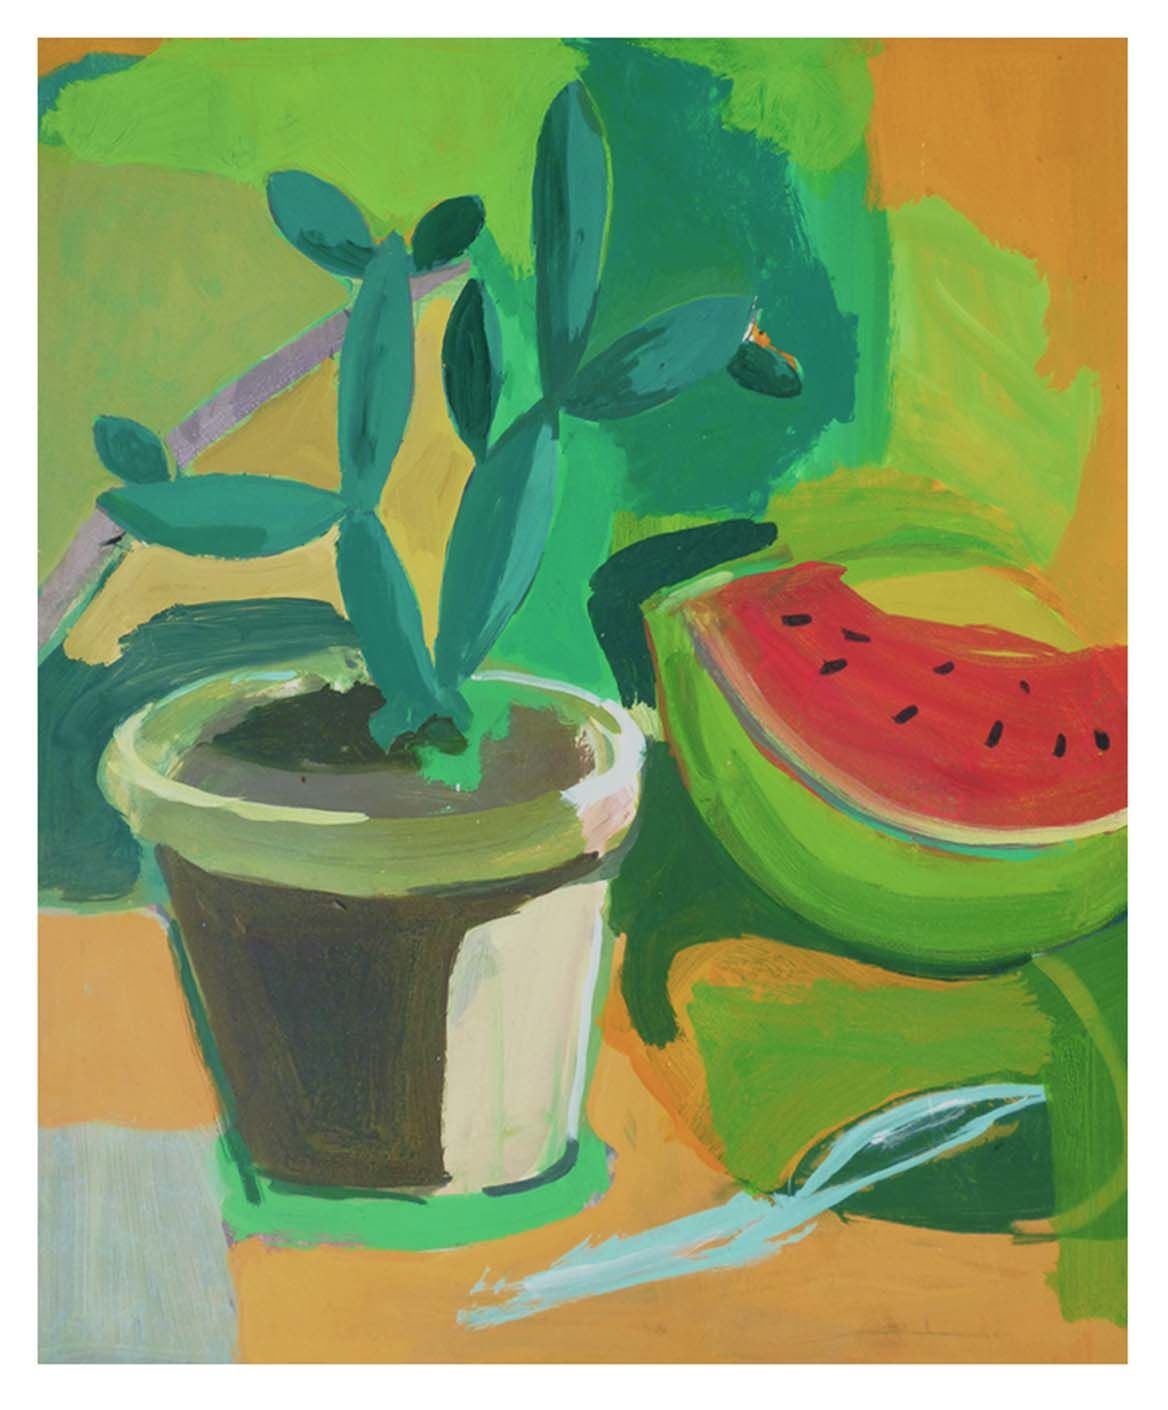 Still life with cactus & watermelon